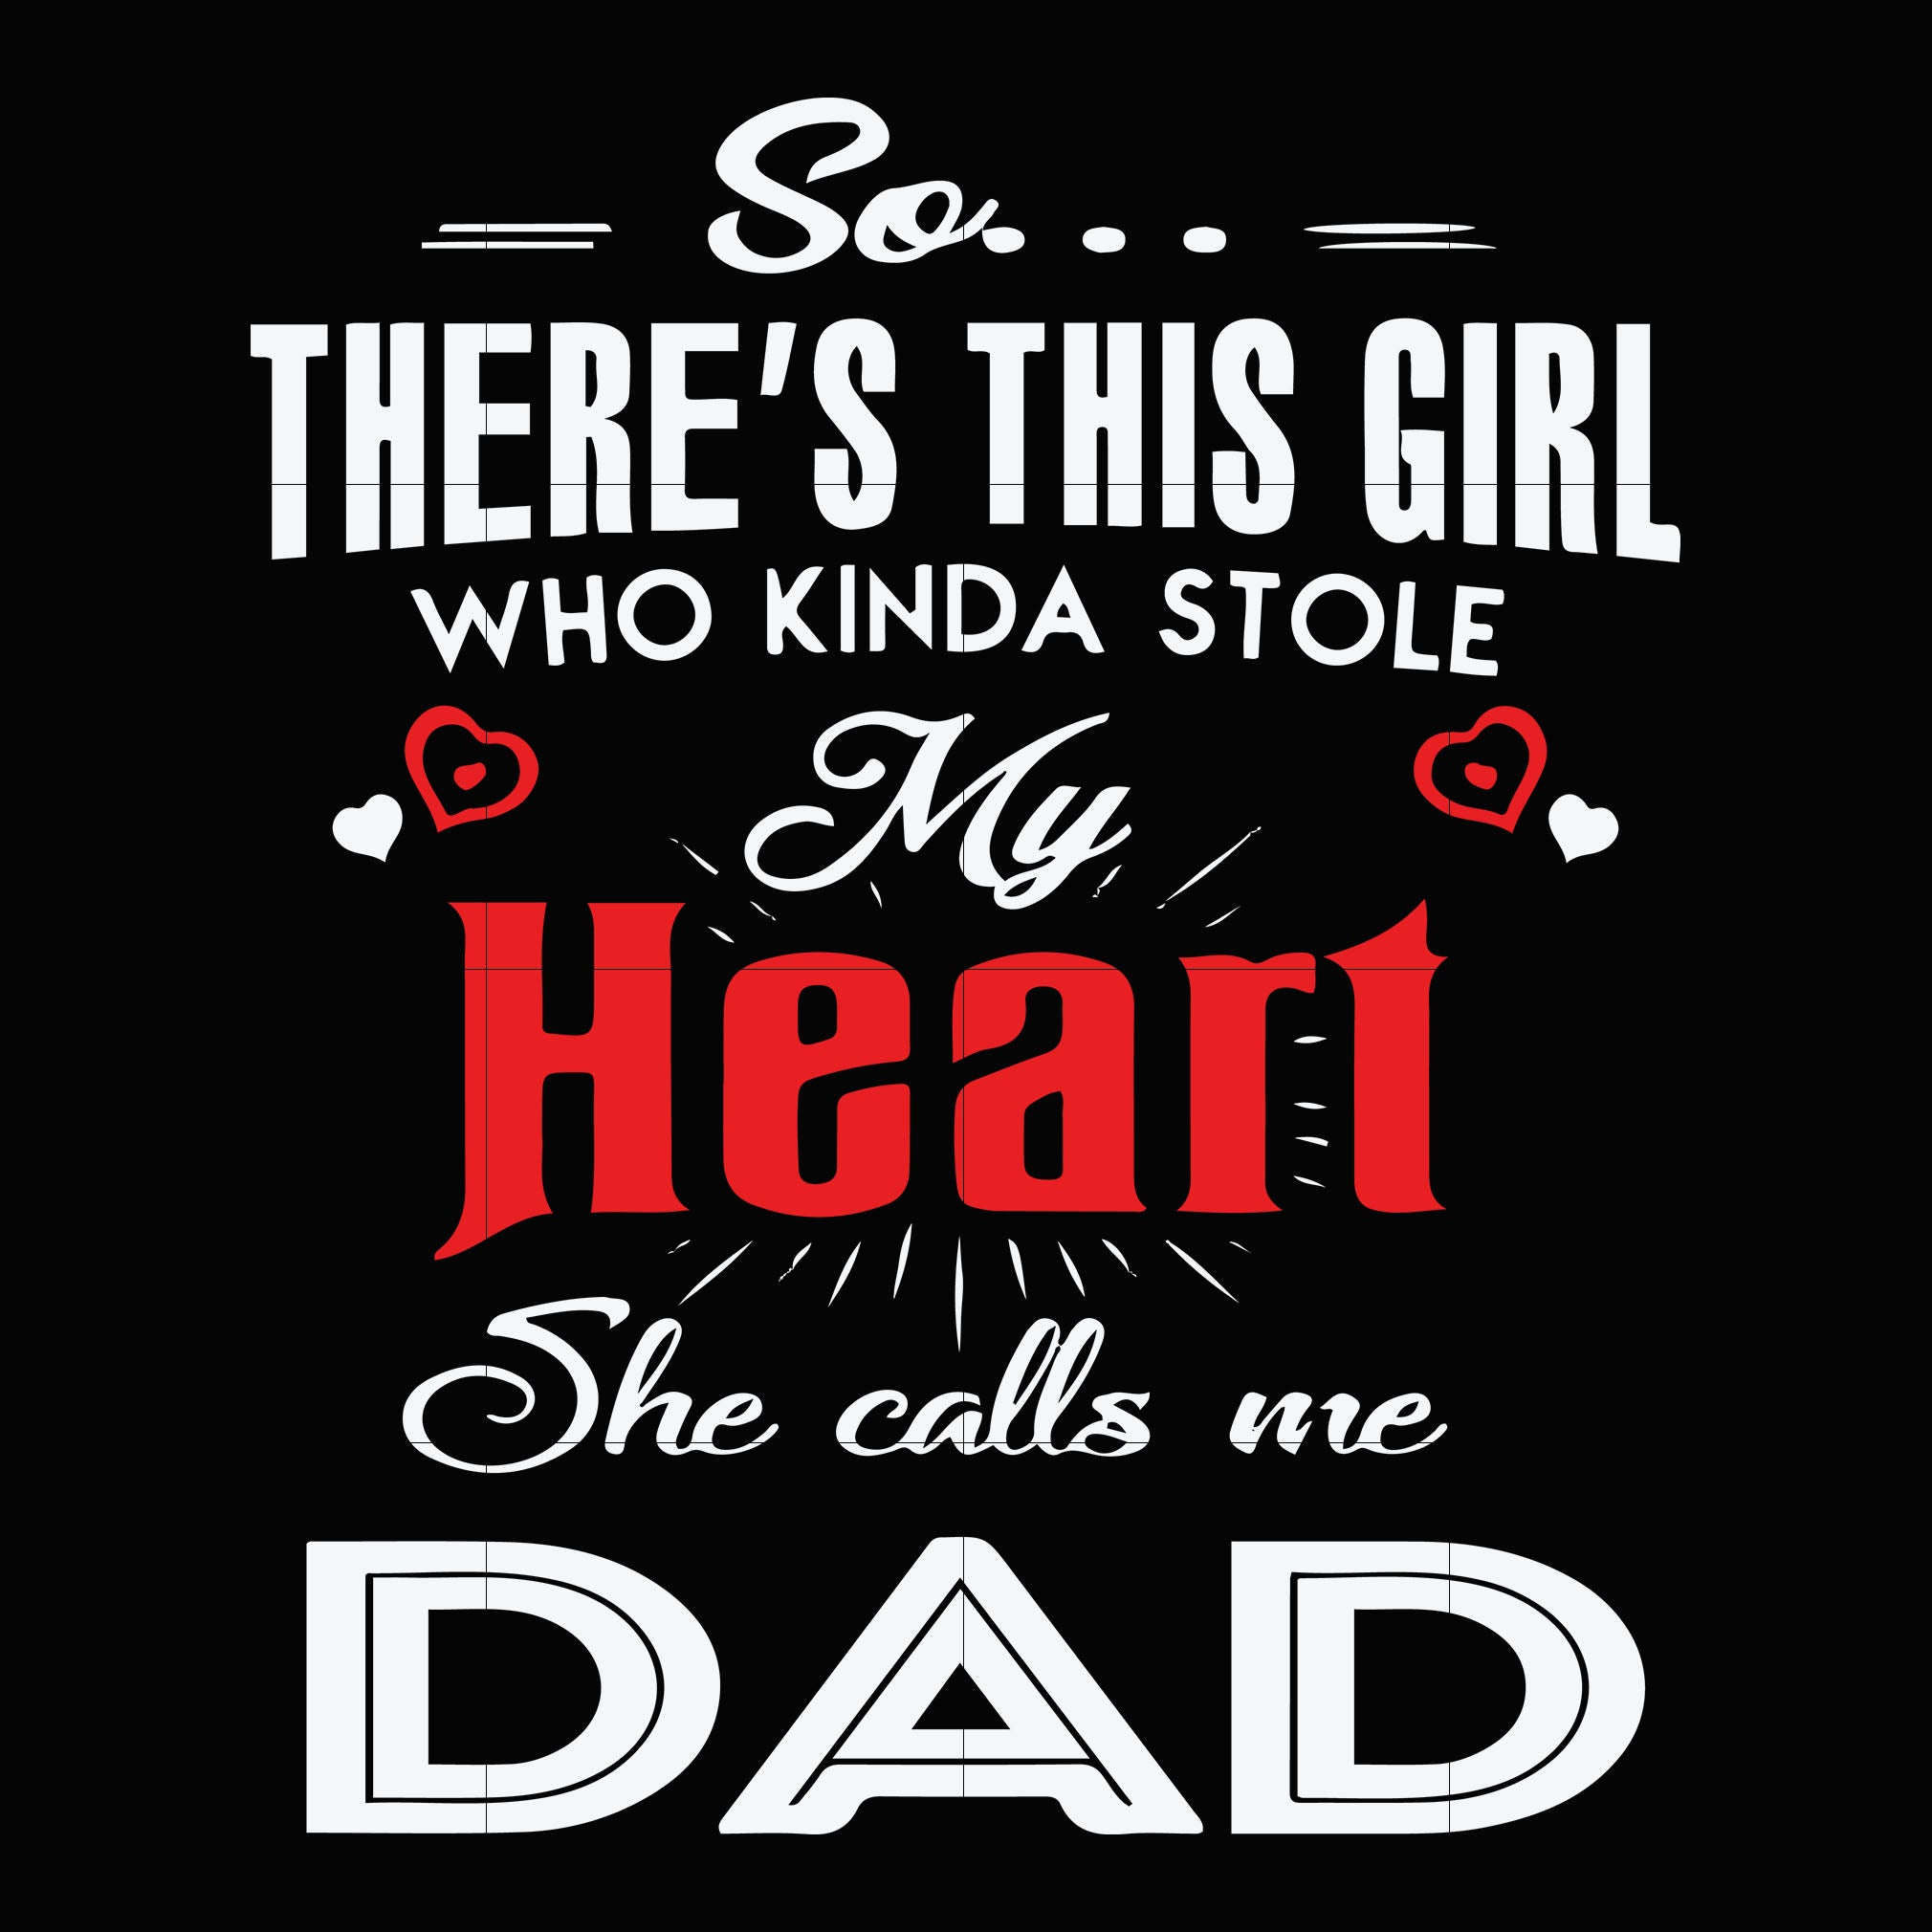 So there's this girl who kinda stole my heart she calls me dad svg ,dxf,eps,png digital file